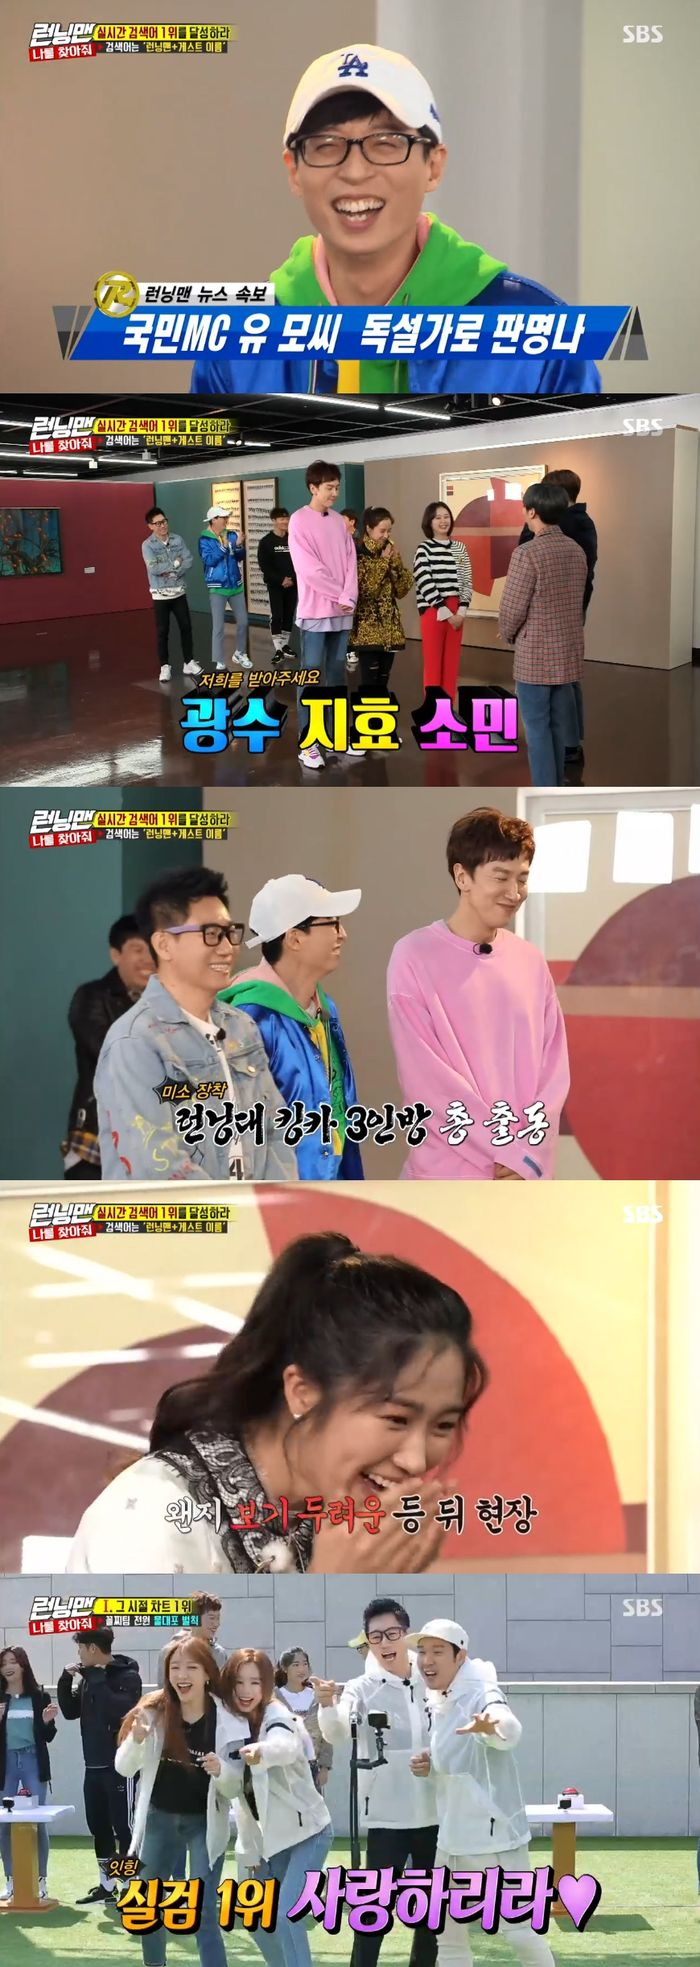 <p> Real-time search Race start.</p><p>21 broadcast of SBS Running Manin Gone Girl as a guest with a real-time Search 1 to achieve that you must Race to start.</p><p>Ahead of the real time Search Term 1 to achieve popular. The first seventeen Lenny, wins and full min, Song JI Hyo as a team.</p><p>The actress Kim Hye Yun and the same team to be Yoo Jae Suk, JI Suk Jin, Lee Kwang-Soo is supported.</p><p>Three people are Kim Hye Yun is a selection of in order to receive a push-up, sit-UPS, squats, and more stamina. But the analysis with dropouts and Yoo Jae Suk, Lee Kwang-Soo is Kim Hye Yun team.</p><p>The information name is Kim Jong Kook, sheep and more like the same team was EXID Hani and brush but to and the analysis with the same team.</p><p>Since, 4 team 1993 6 27. 1 for curve to equalize. The correct answer in order to fit in the drama scene perfectly depending.</p><p>EXID team quickly lovers in Paris famous vocal answer no transportfit. The next issue in EXID solution Wild Man scene between herperfect and in accordance with the correct answer got a chance to.</p>